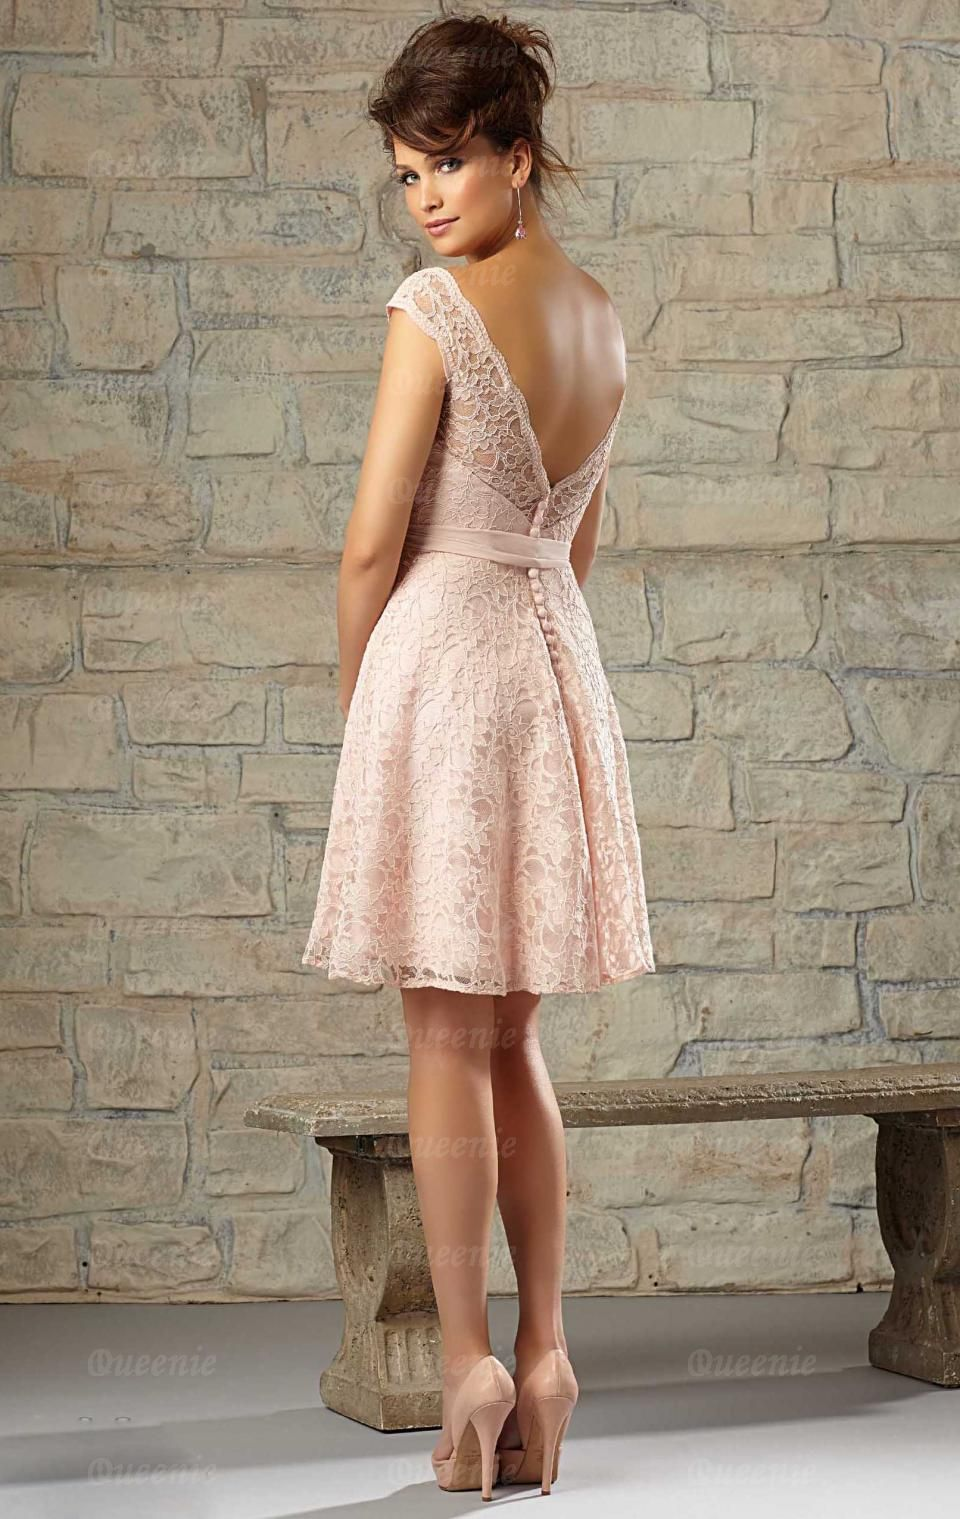 stylish short pink bridesmaid dress bnncc0035 bridesmaid uk bridesmaid dresses pinterest. Black Bedroom Furniture Sets. Home Design Ideas